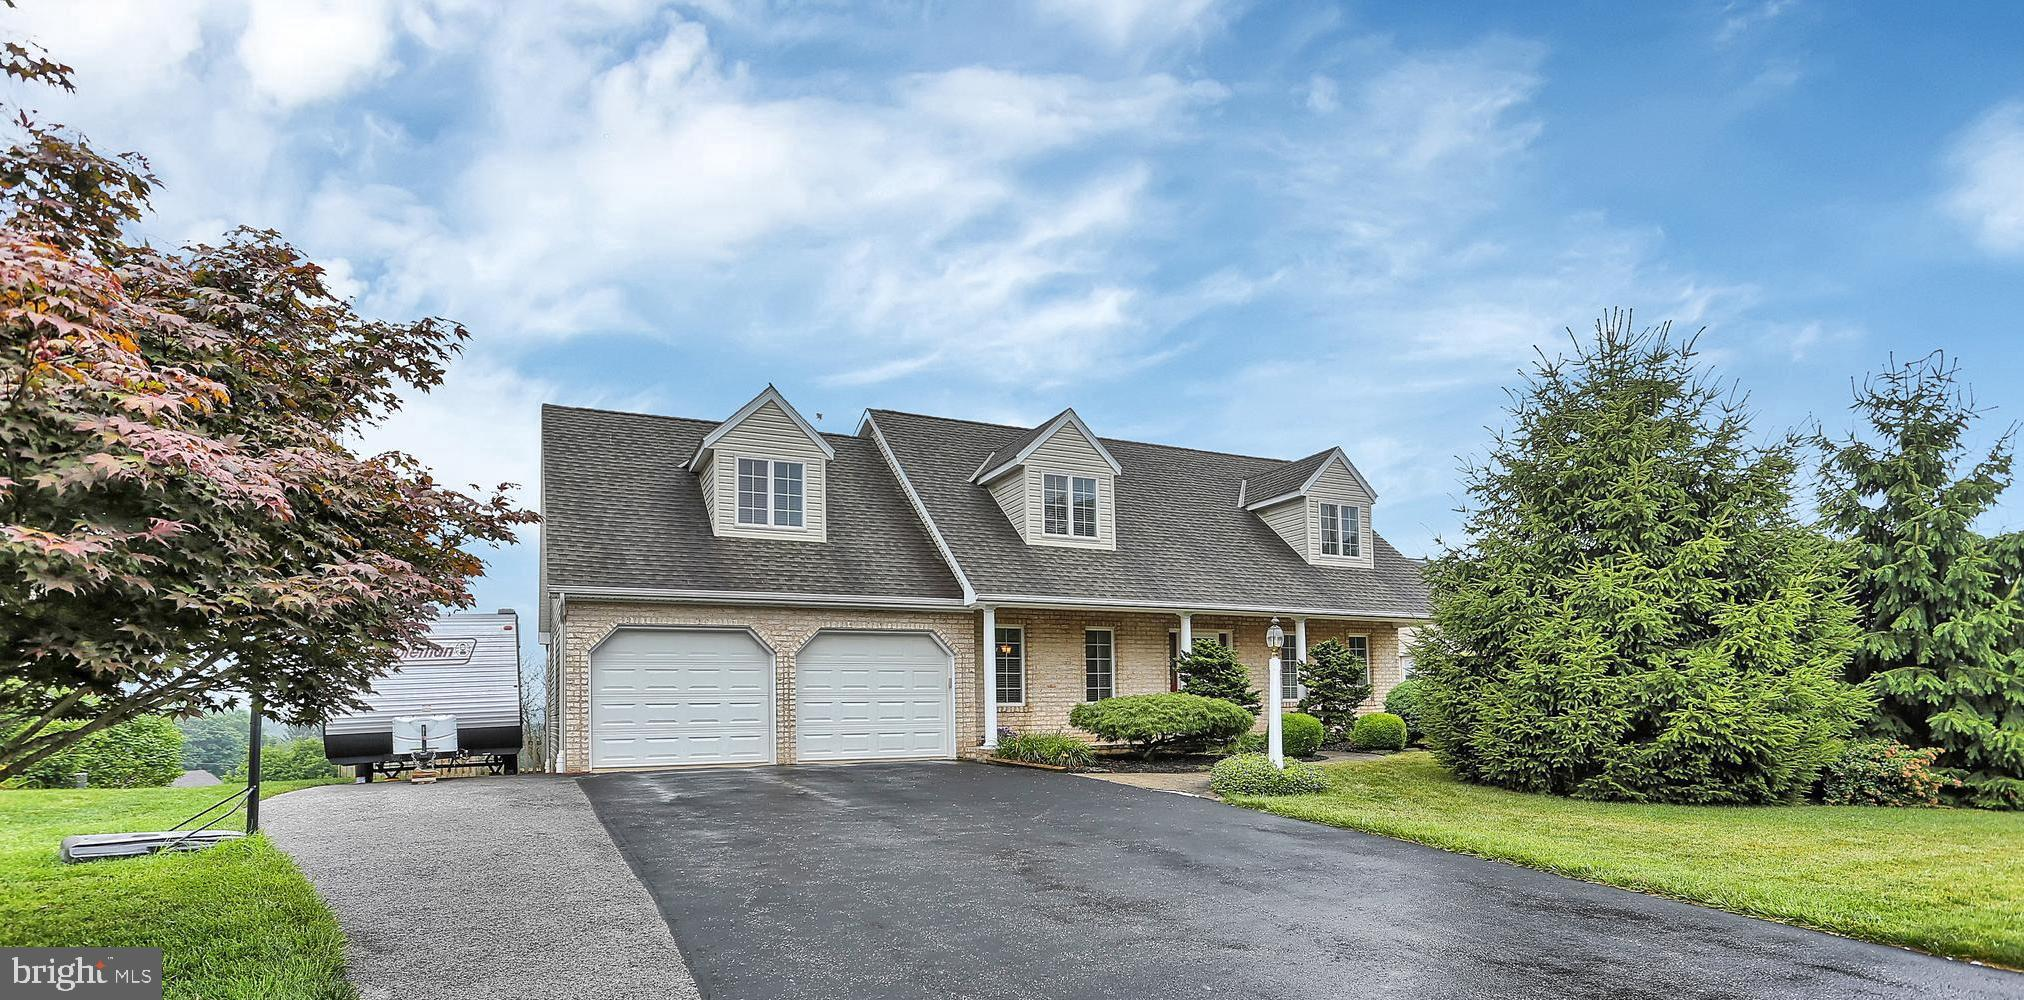 6 NESS COURT, SEVEN VALLEYS, PA 17360